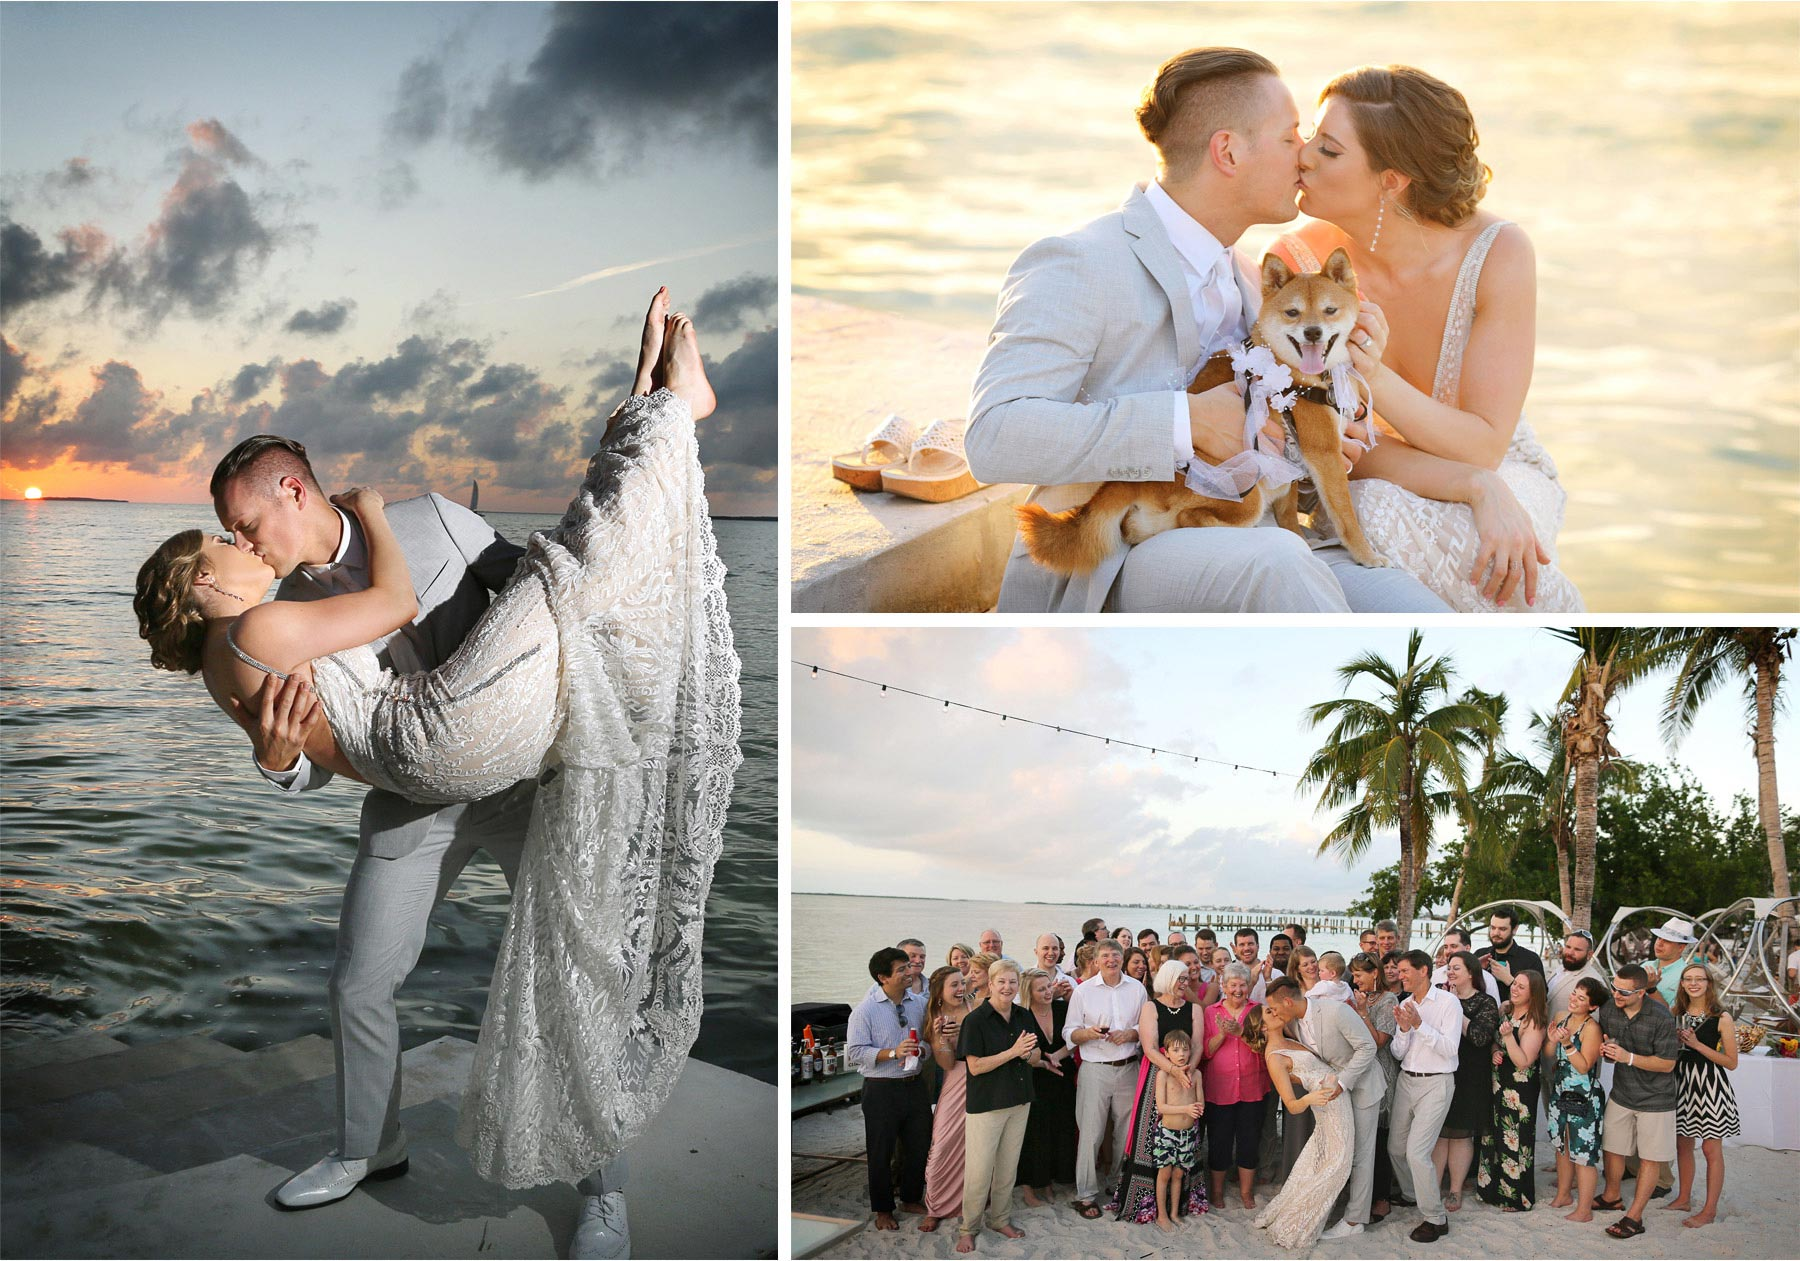 18-Key-Largo-Florida-Keys-Wedding-Photographer-by-Andrew-Vick-Photography-Playa-Largo-Resort-and-Spa-Hotel-Destination-Winter-Bride-Groom-Kiss-Dip-Water-Ocean-Sunset-Dog-Beach-Guests-Vintage-Carrie-and-Brian.jpg